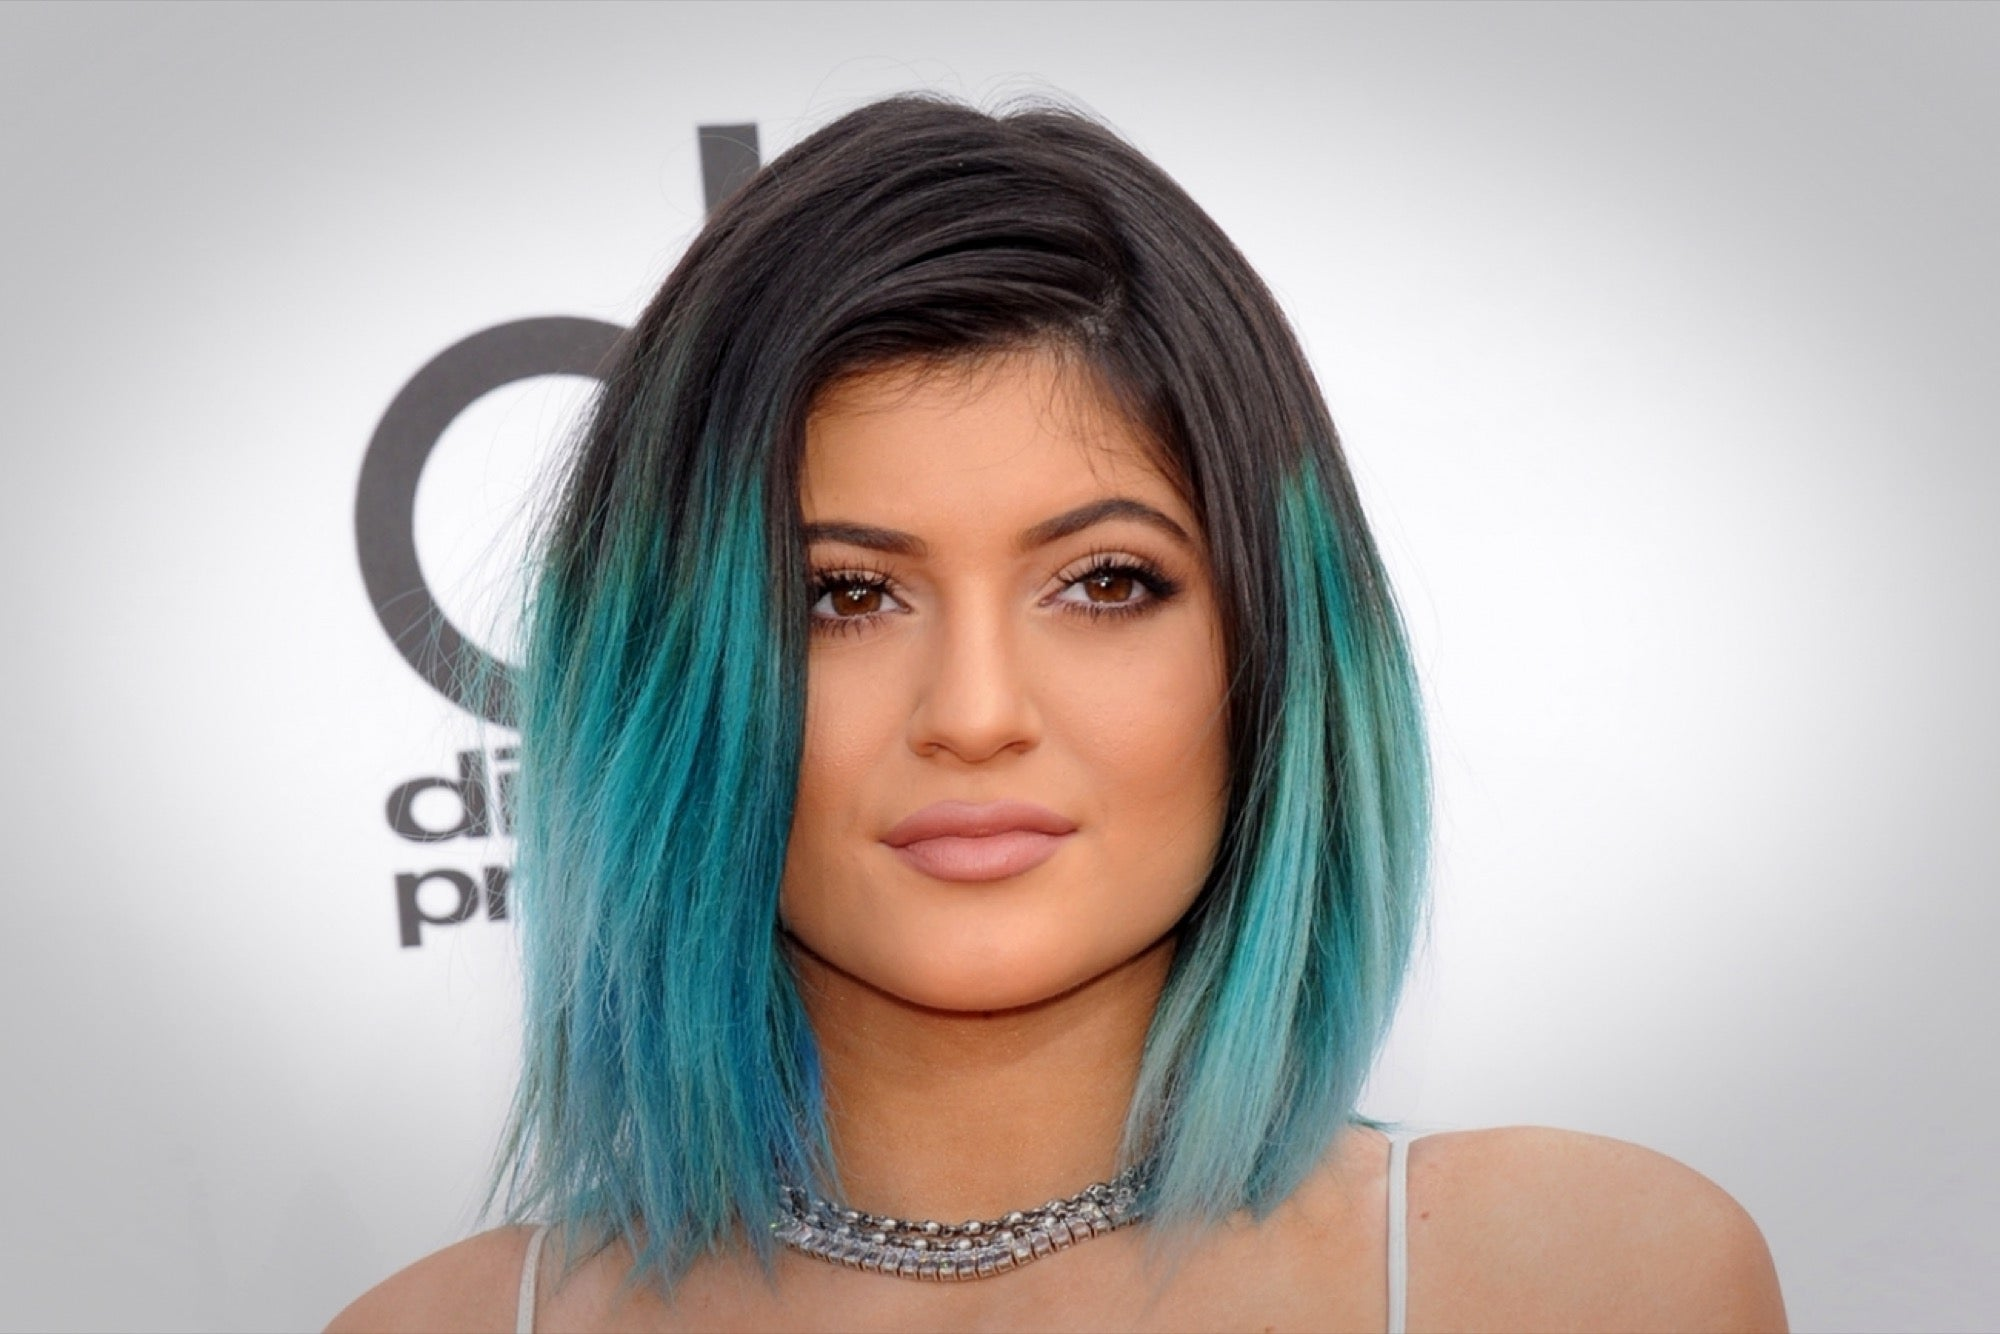 What Kylie Jenner's Hair Color Can Teach Brands About the Power of ...